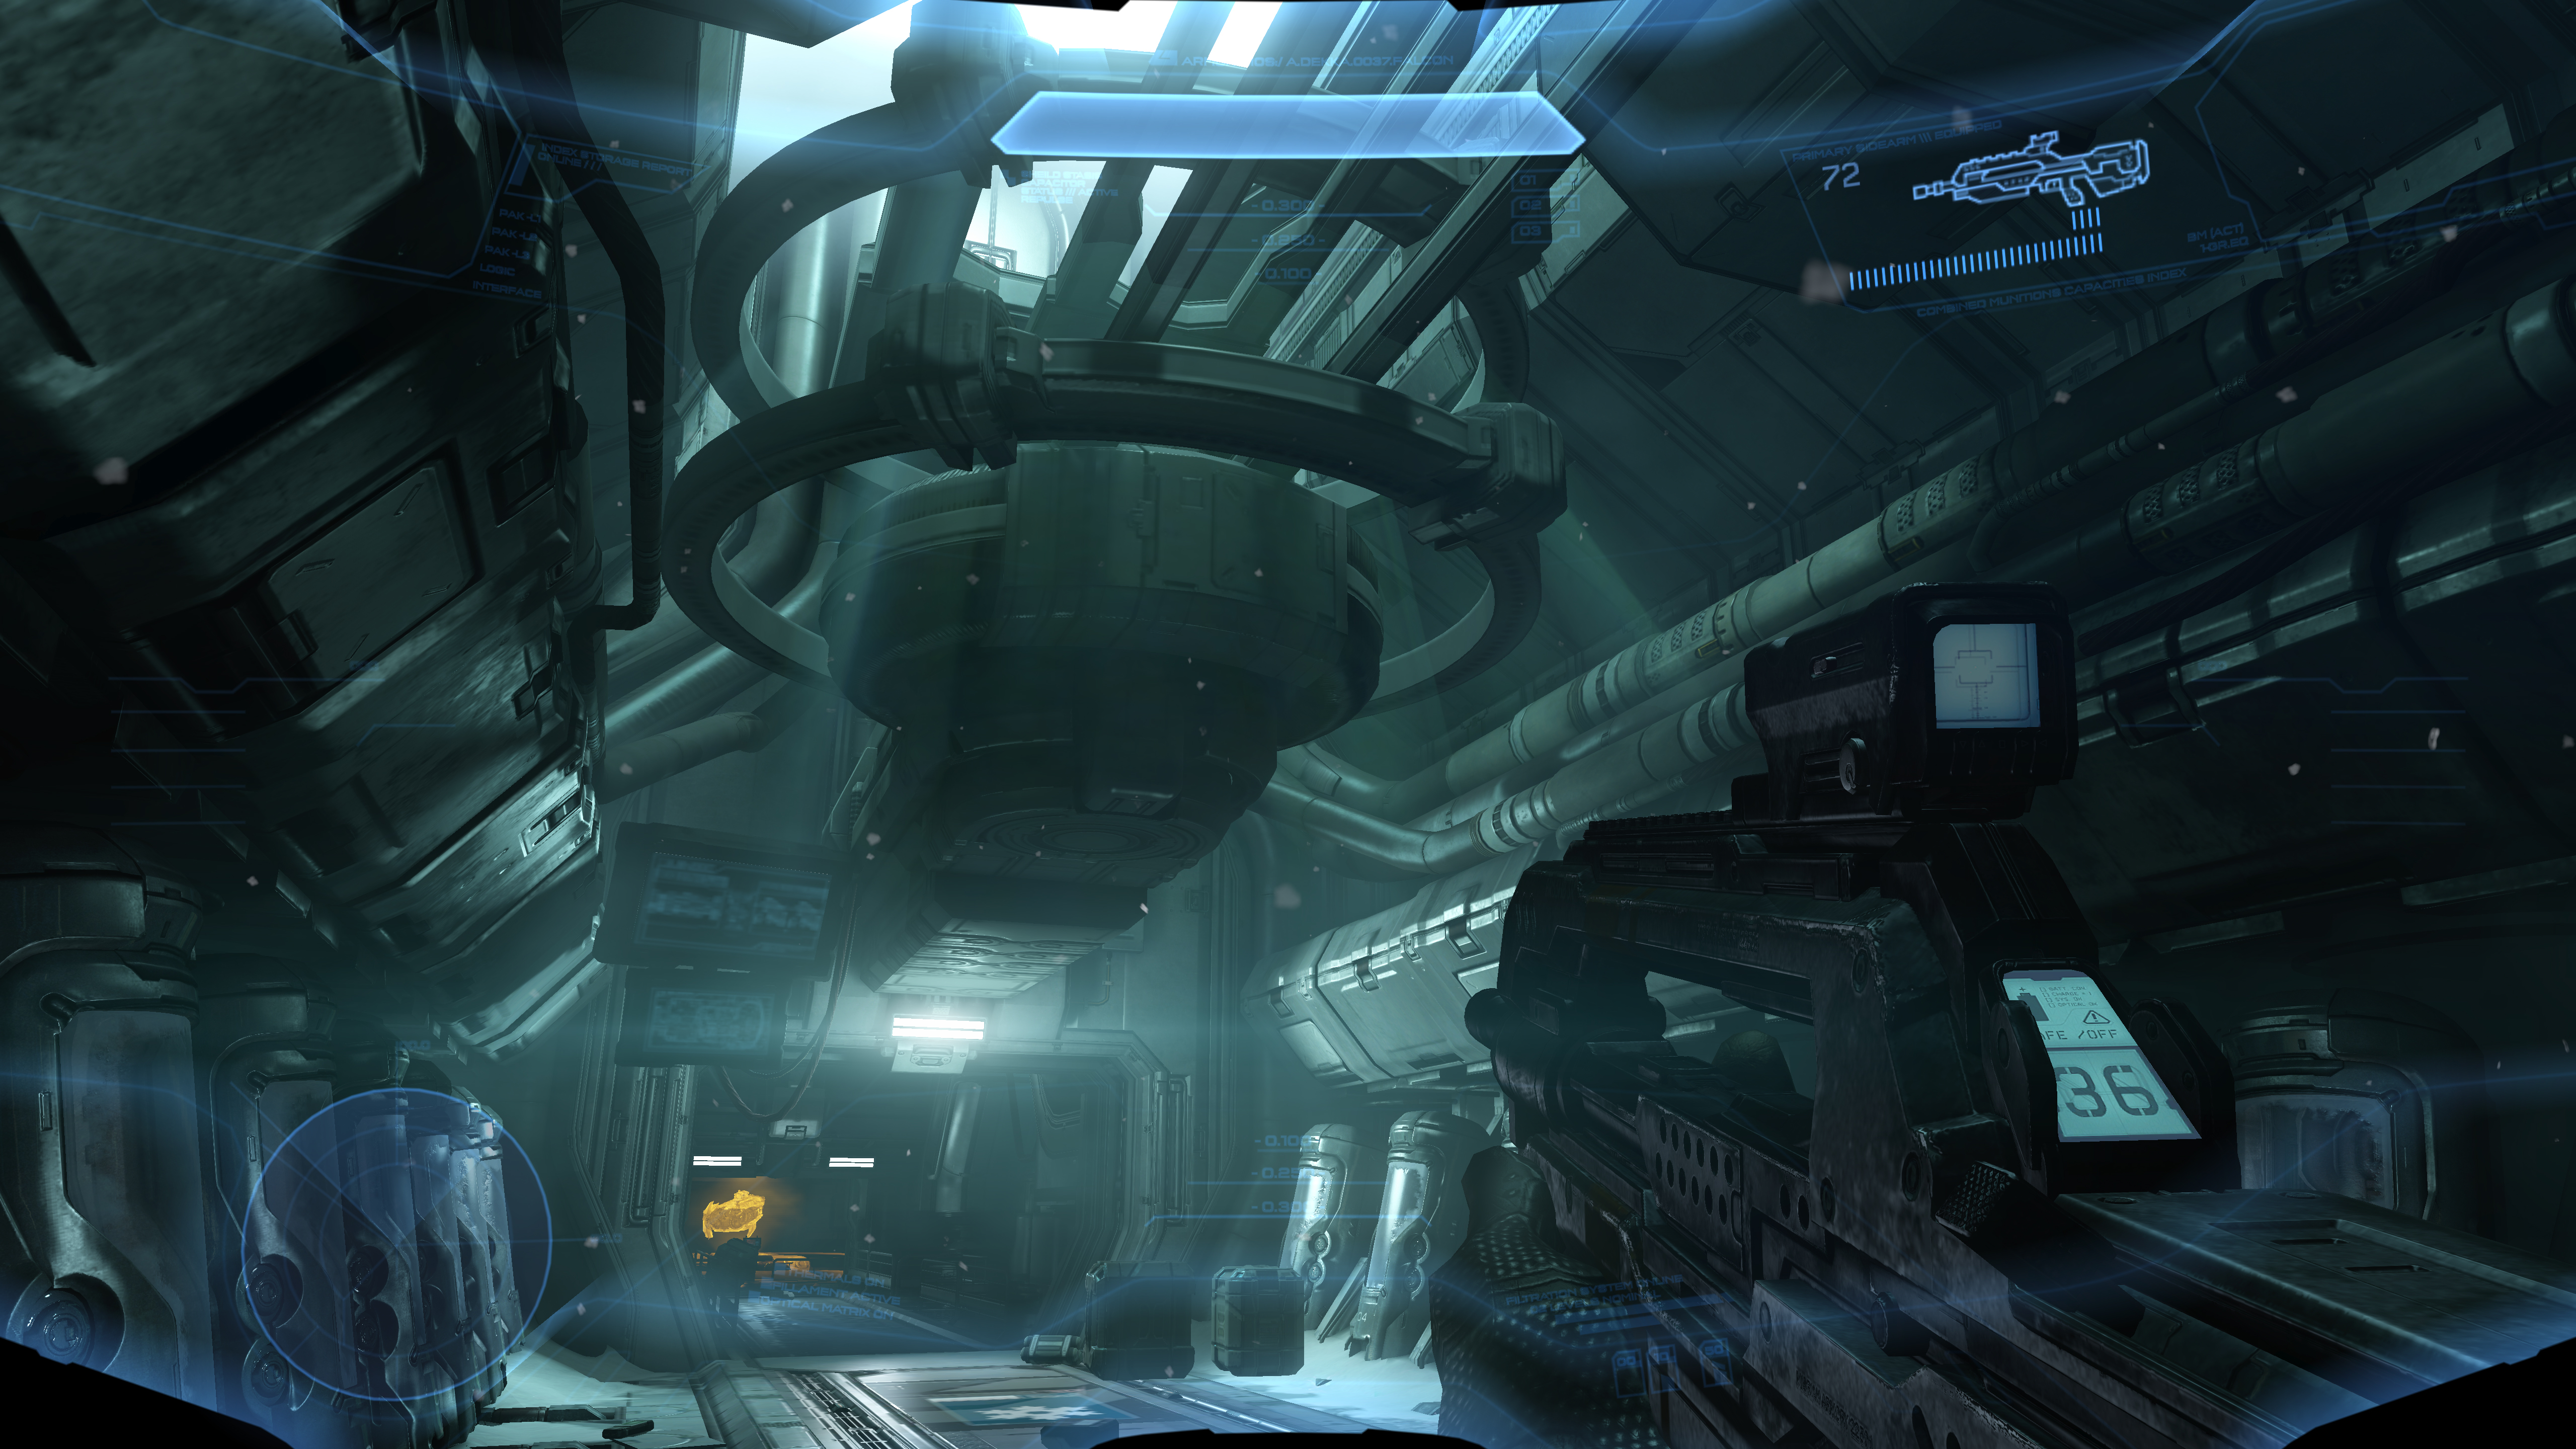 Halo 4 redefines iconic franchise with halo infinity - Halo 4 pictures ...